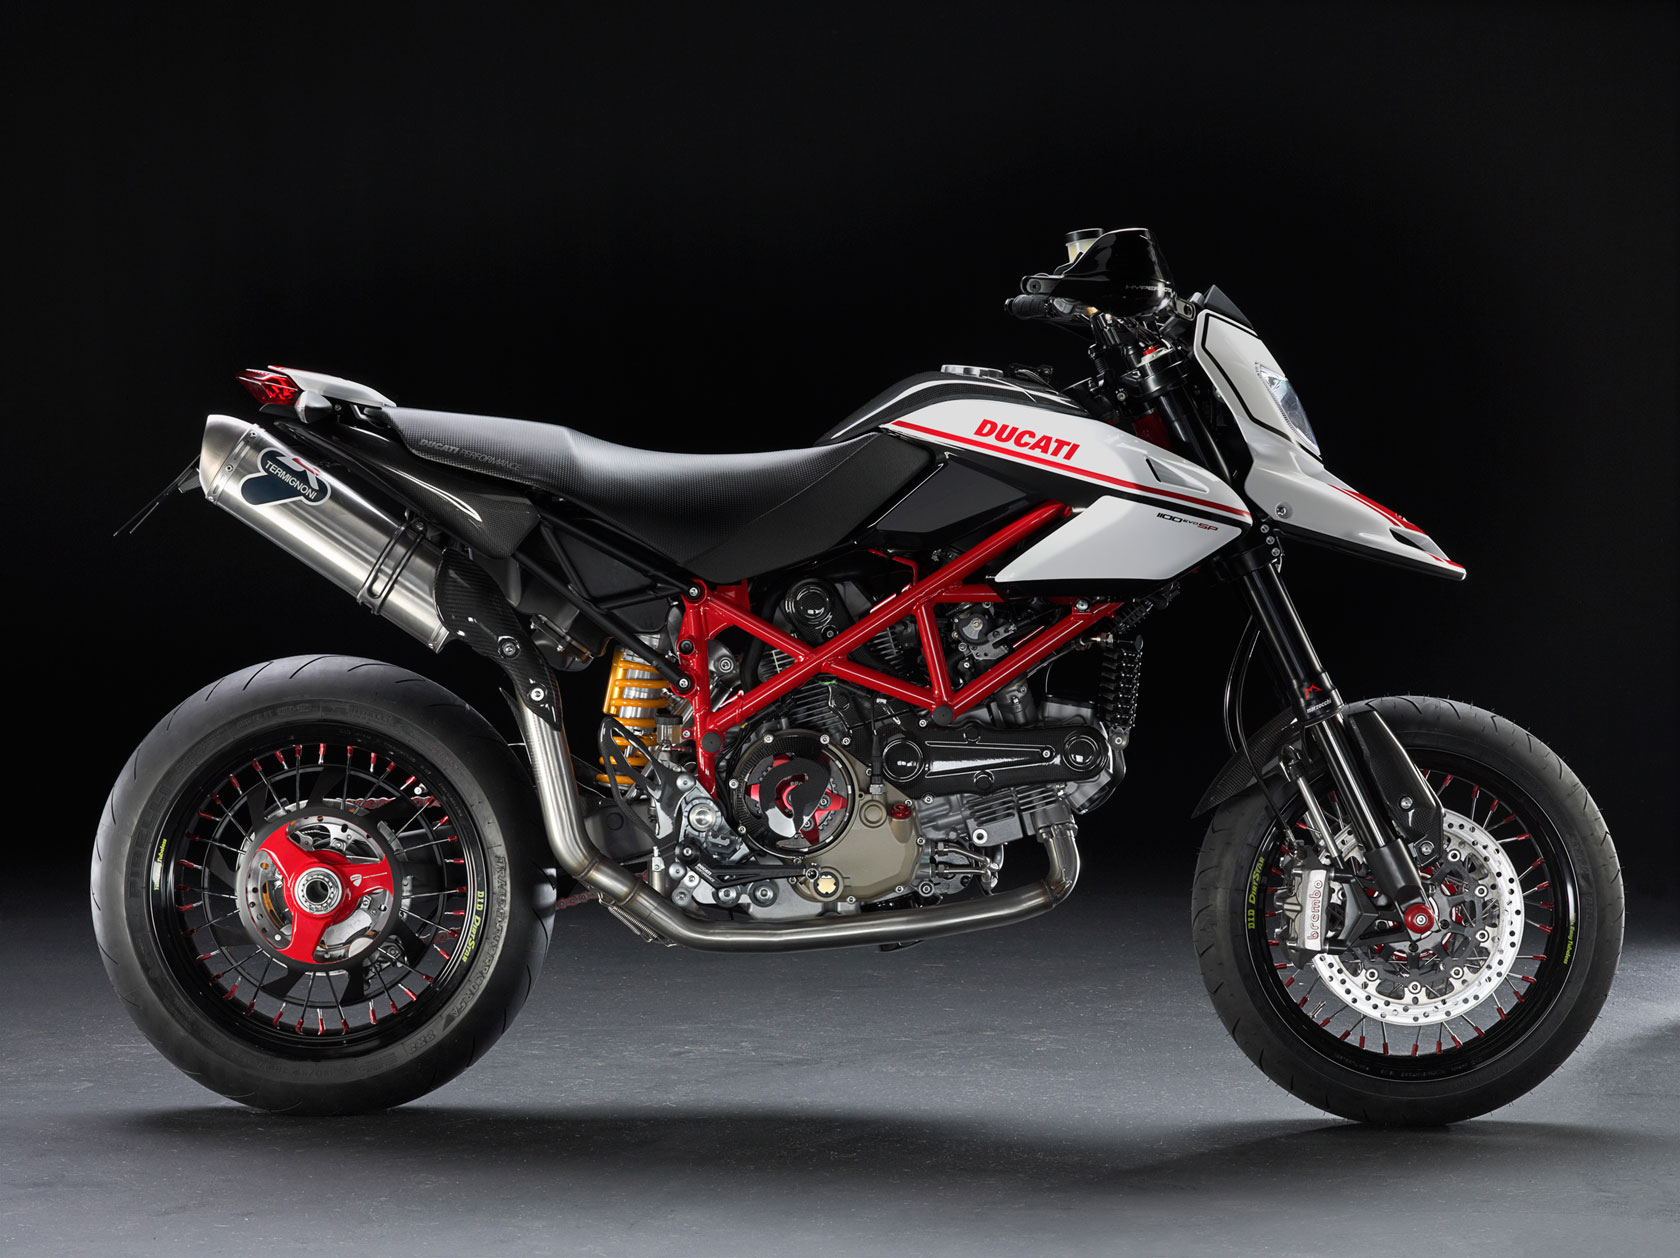 Ducati Hypermotard 796 images #79581